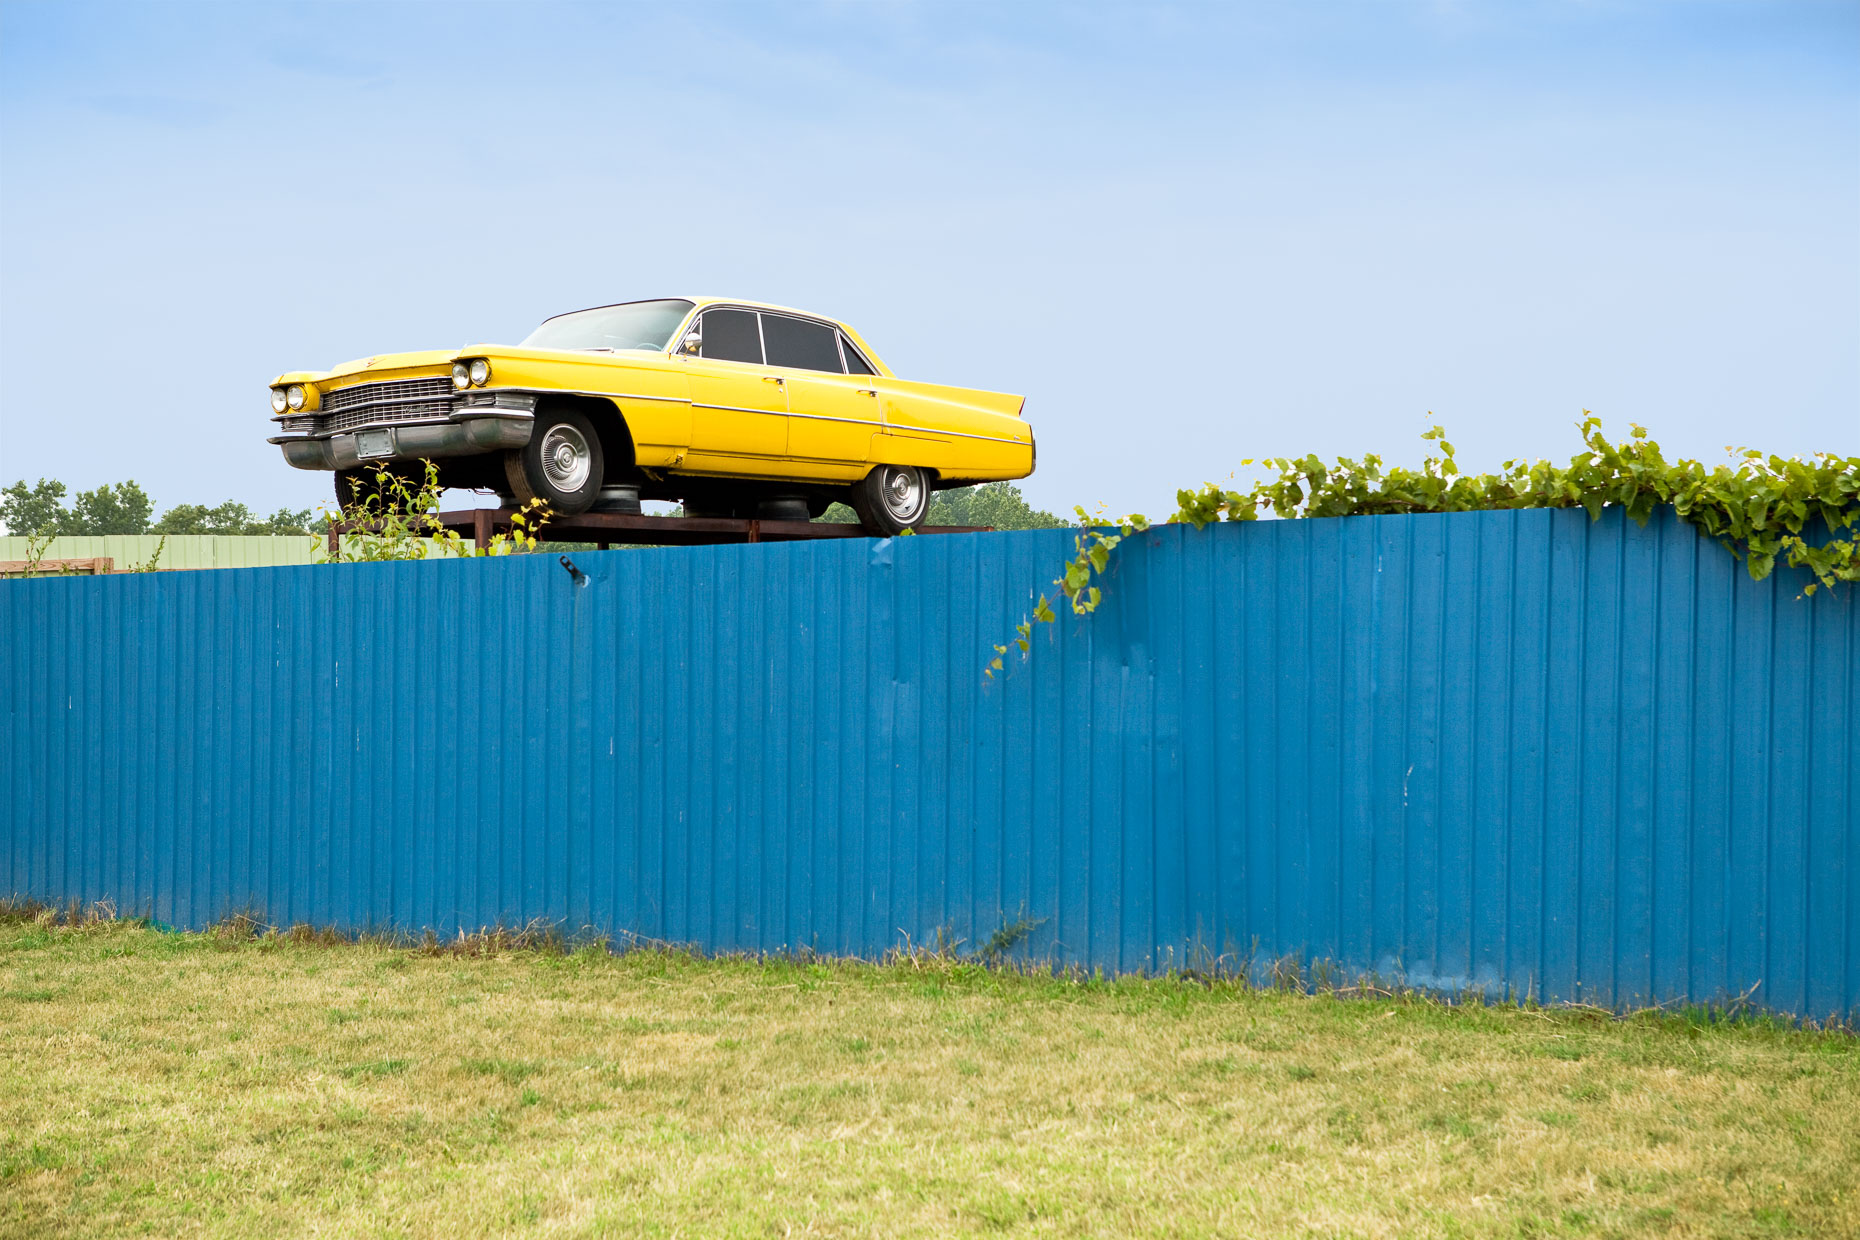 Yellow Cadillac car on top of blue fence at auto wrecking yard by David Zaitz